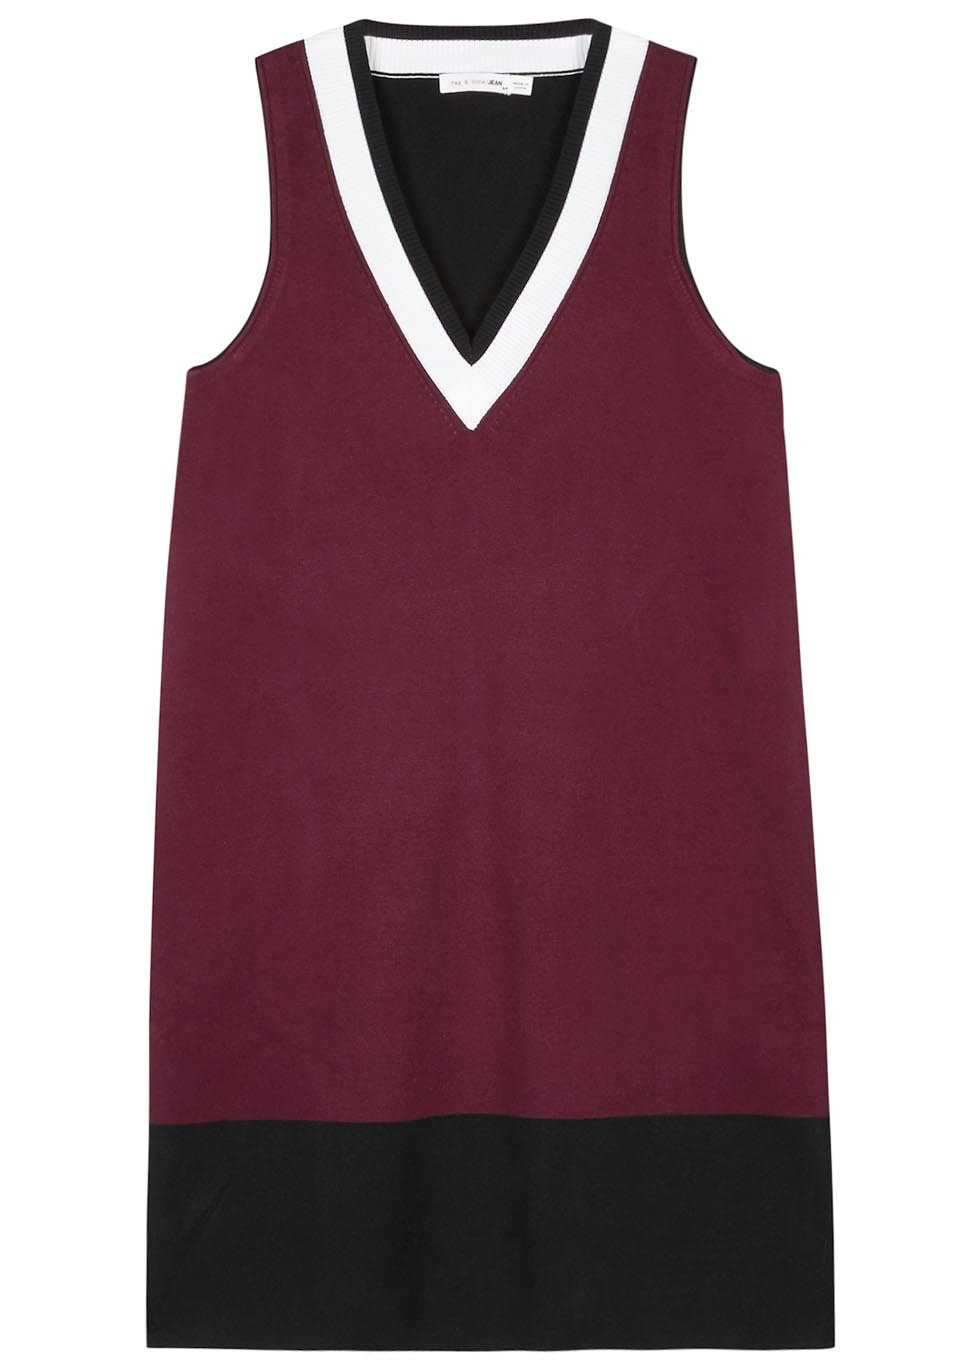 Ainsley Ribbed Cotton Blend Dress - style: shift; length: mid thigh; neckline: v-neck; sleeve style: sleeveless; predominant colour: burgundy; secondary colour: black; occasions: evening; fit: body skimming; fibres: cotton - mix; sleeve length: sleeveless; texture group: cotton feel fabrics; pattern type: fabric; pattern: colourblock; multicoloured: multicoloured; season: s/s 2016